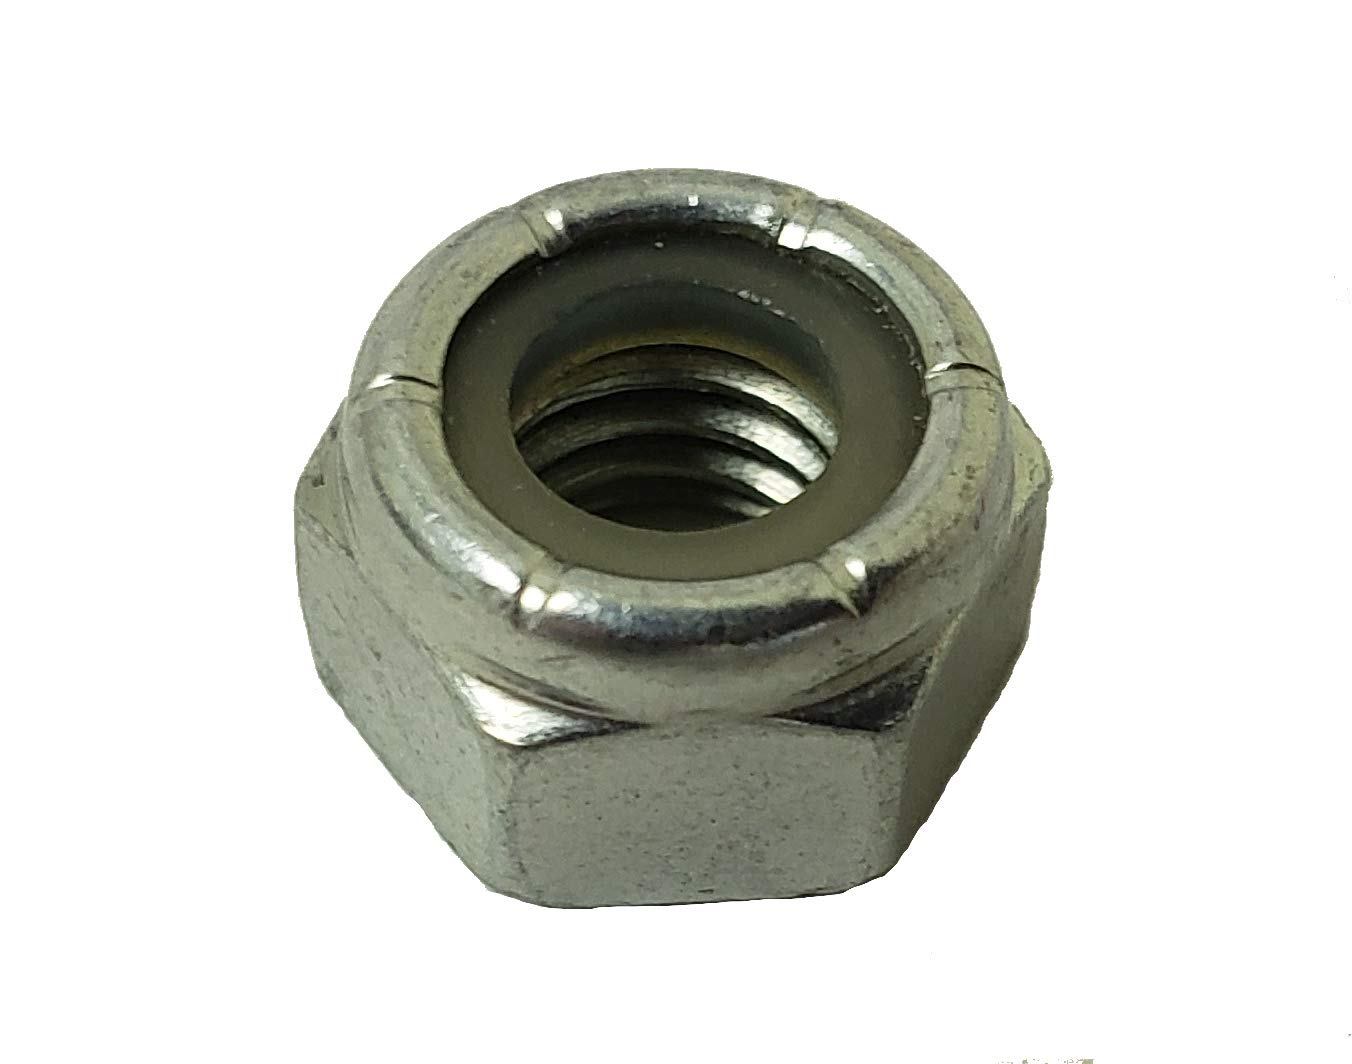 John Deere Original Equipment Lock Nut - 14M7166